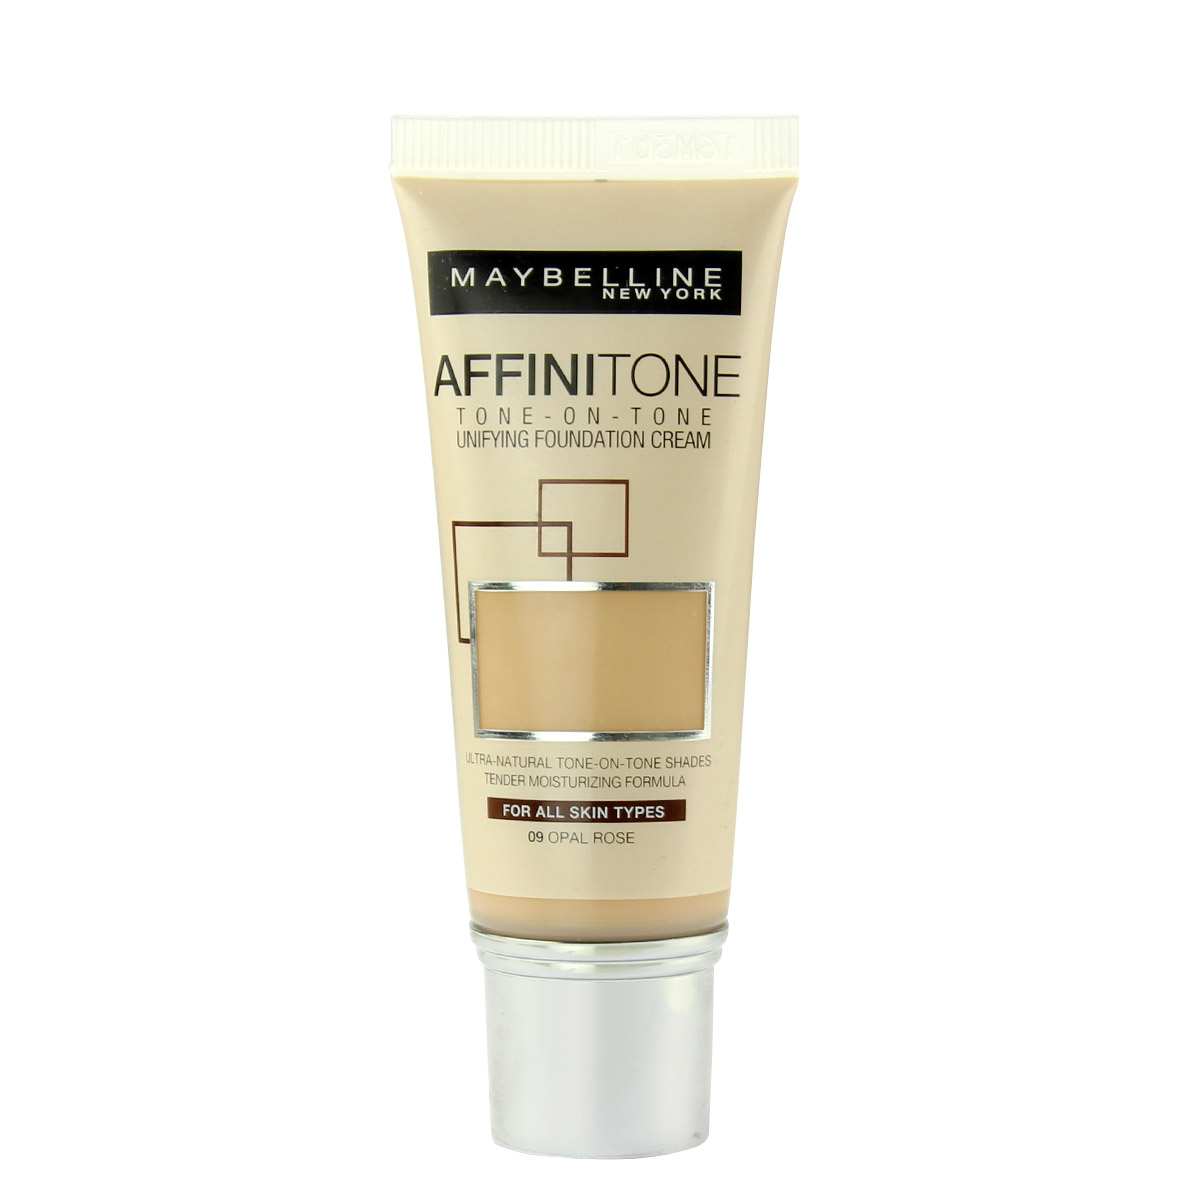 Maybelline Affinitone Unifying Foundation Cream (09 Opal Rose) 30 ml